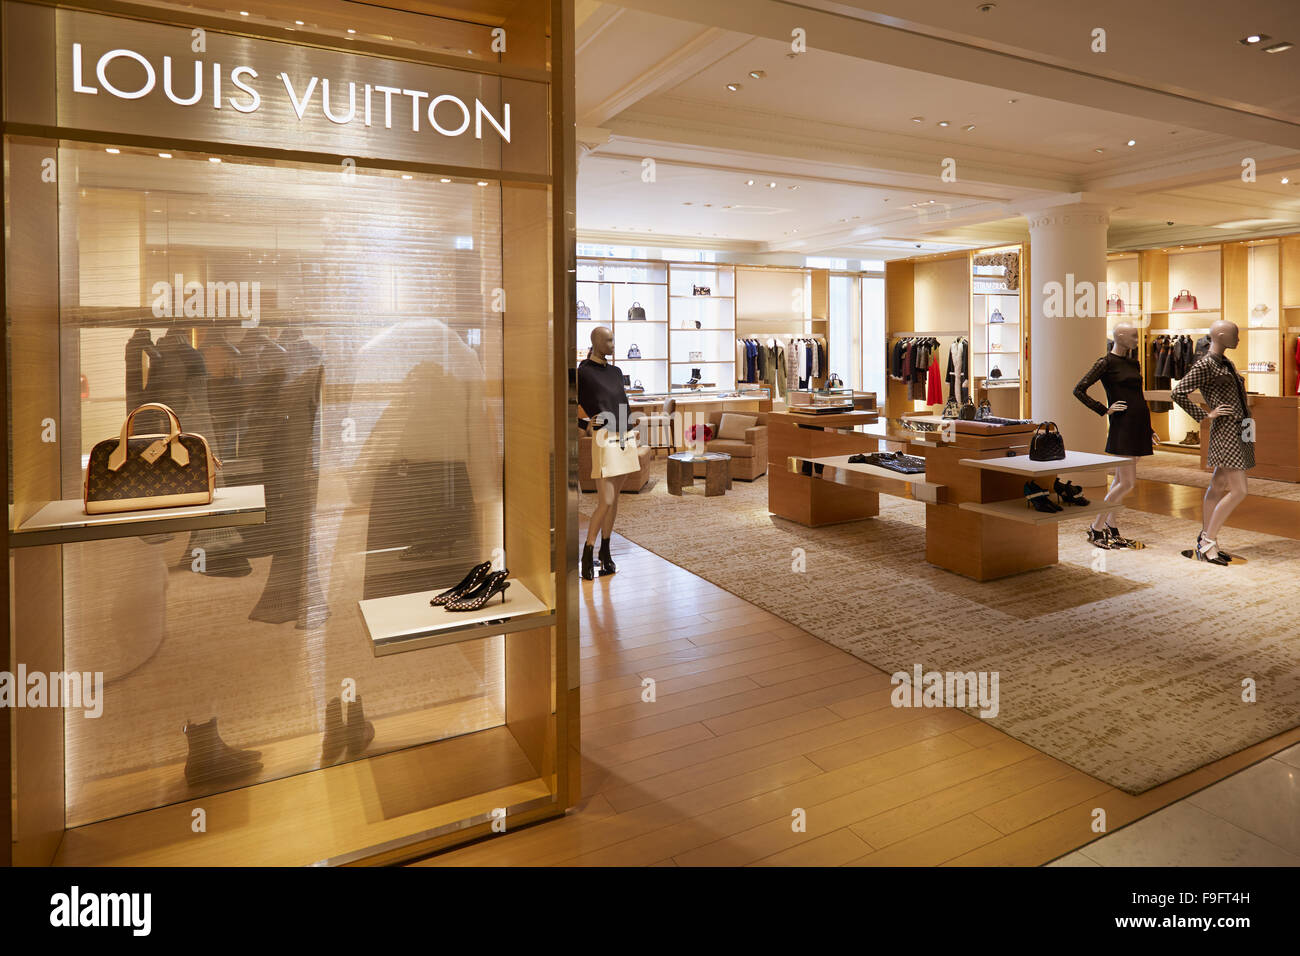 daccdd4316b Louis Vuitton Shop Stock Photos   Louis Vuitton Shop Stock Images ...